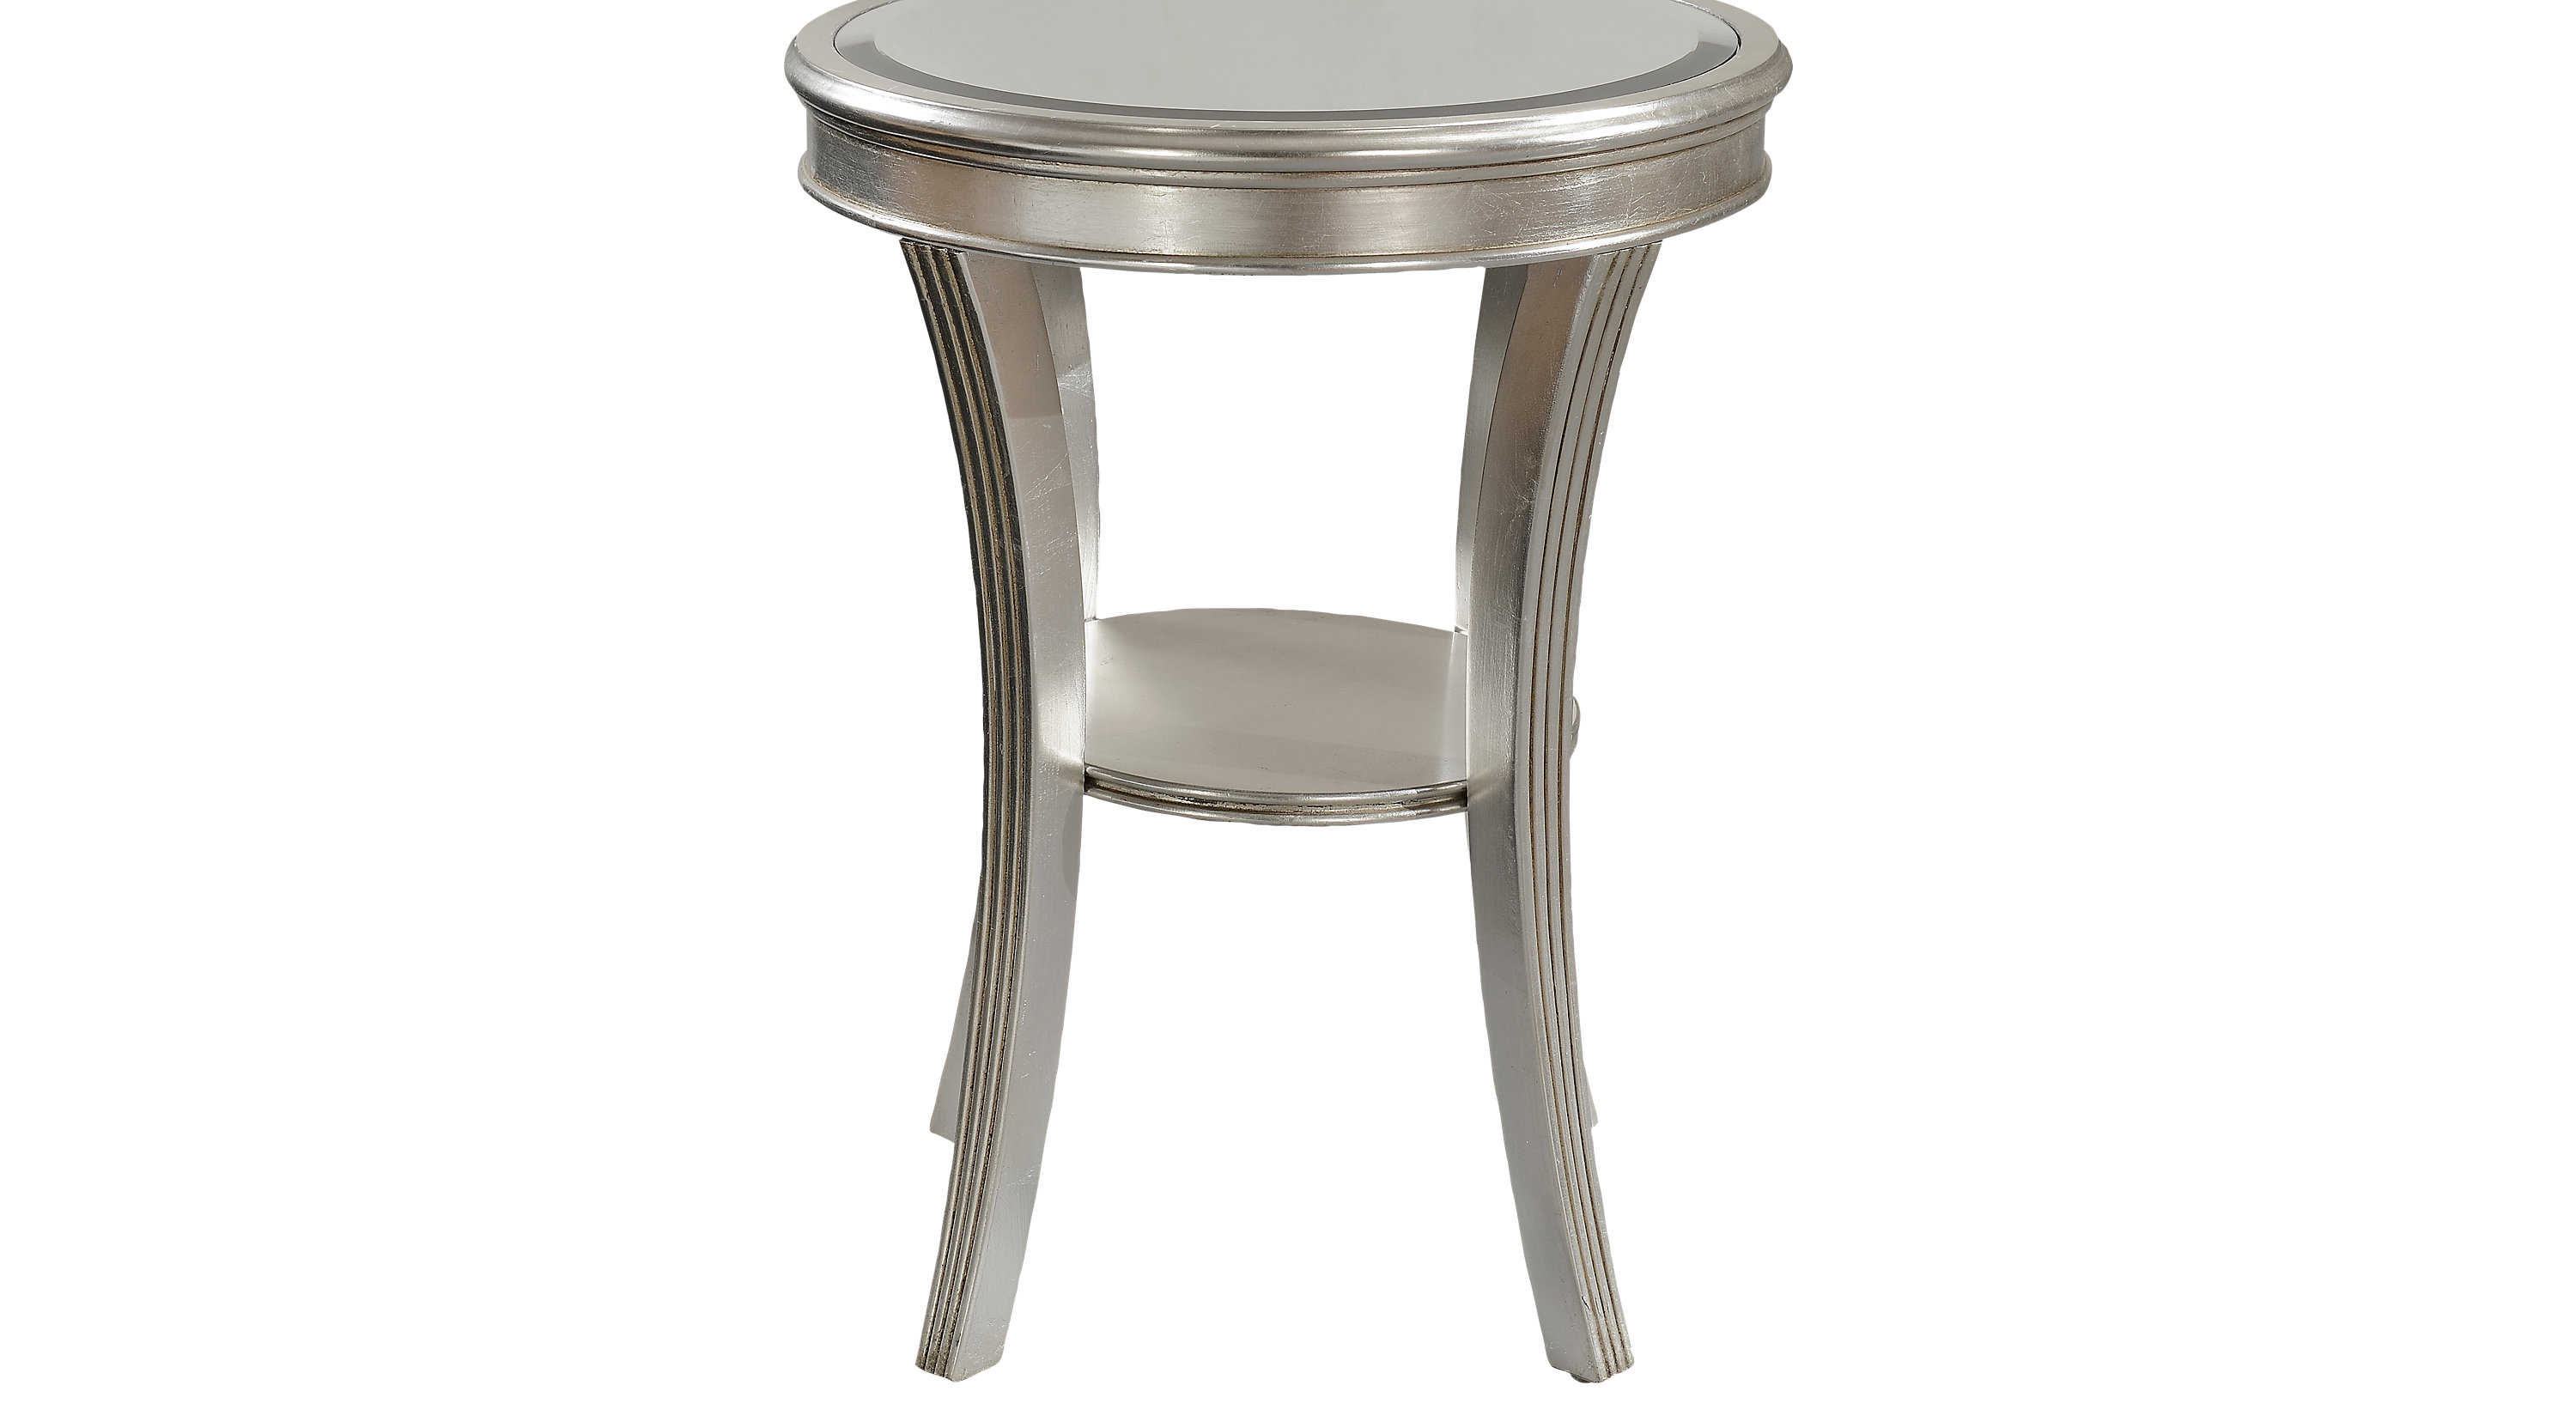 waterbury silver accent table contemporary pedestal glass top patio end tables dorm room furniture unique desk lamps large square vanity small acrylic safavieh home collection